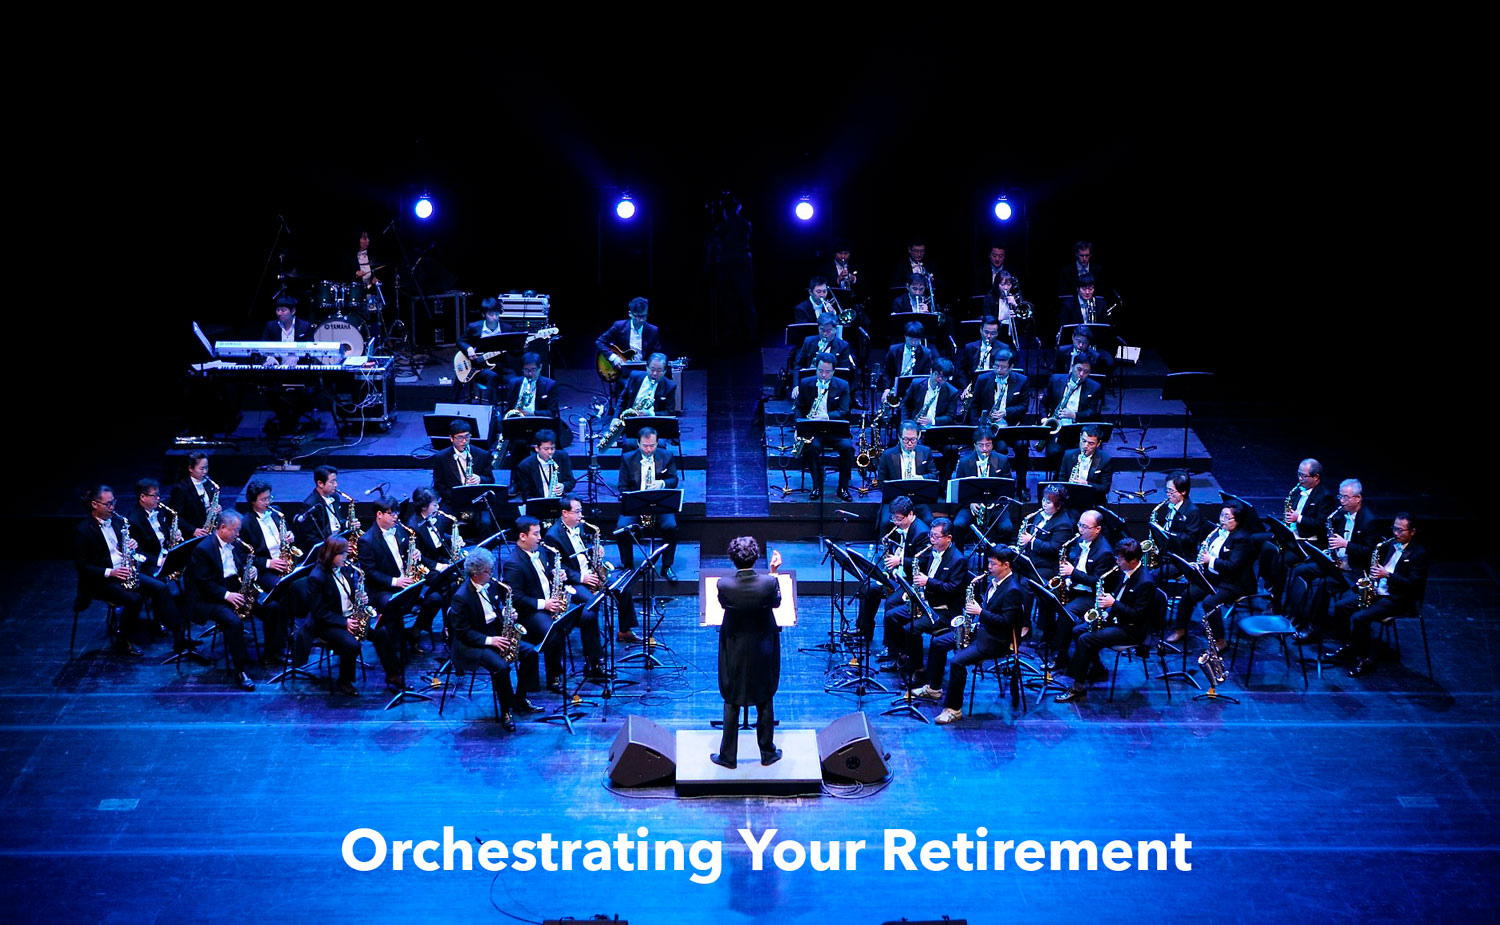 Orchestrating-Your-Retirement.jpg